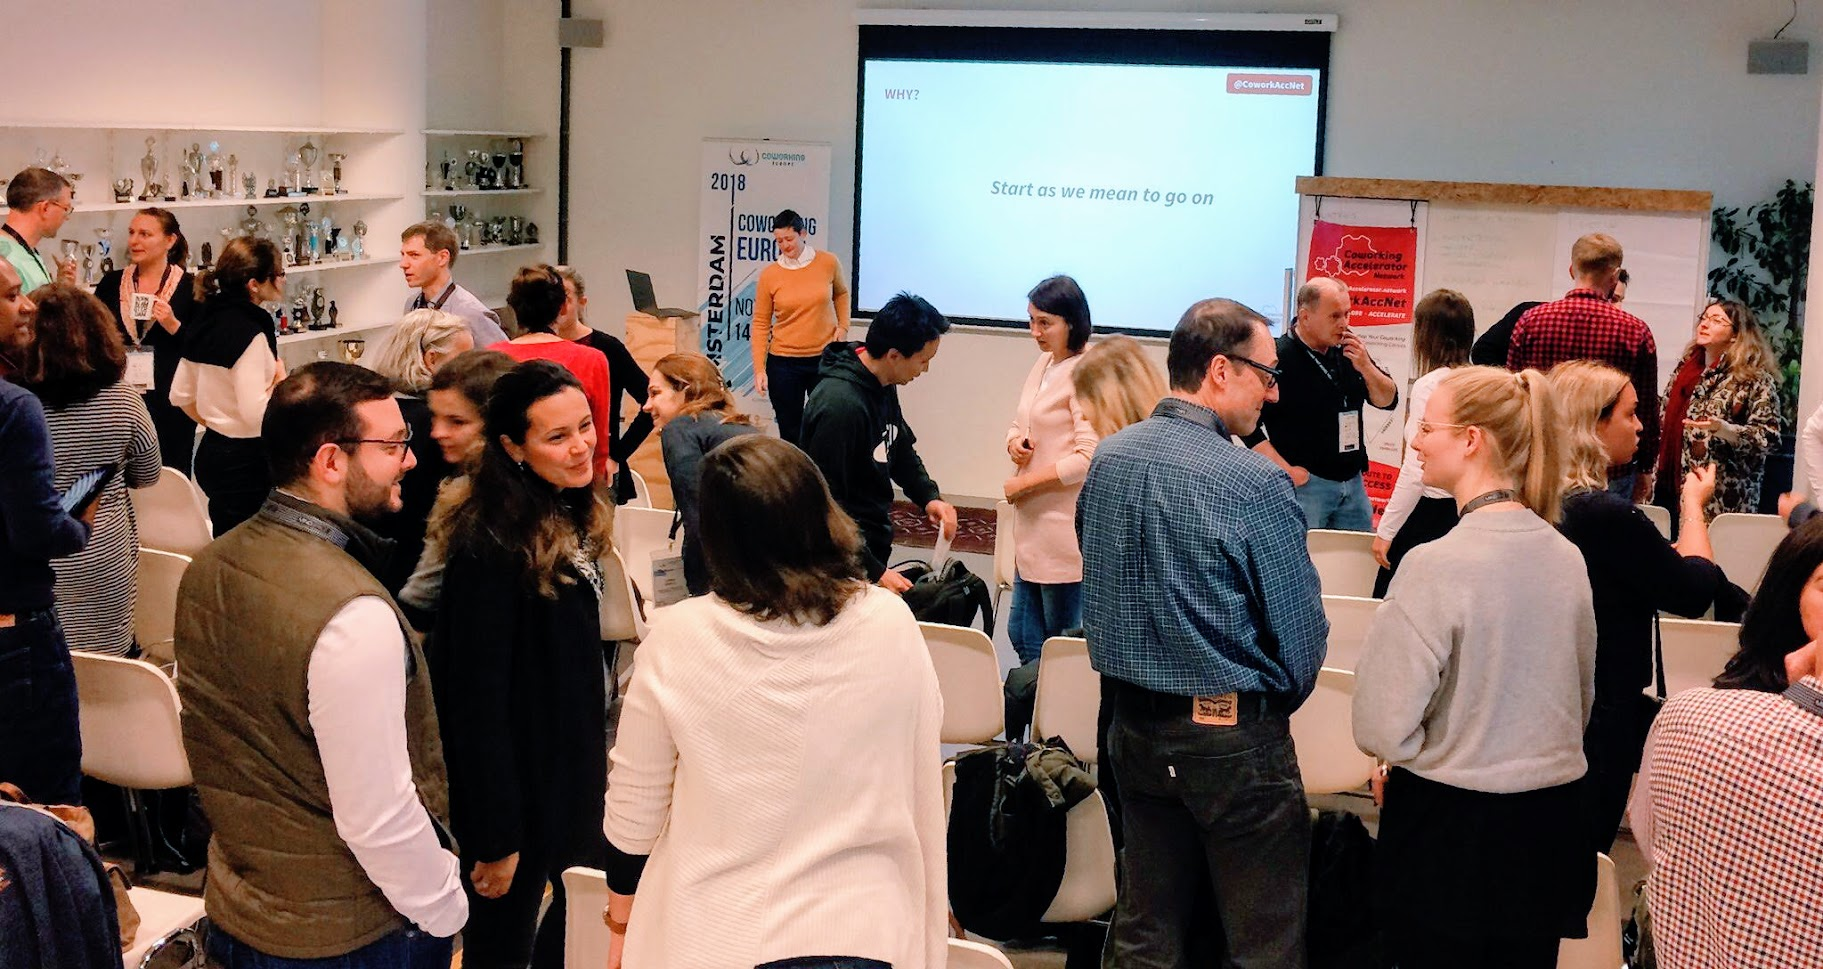 """""""Start as we mean to go on"""": building our community right there and then. Coworking Europe 2018"""